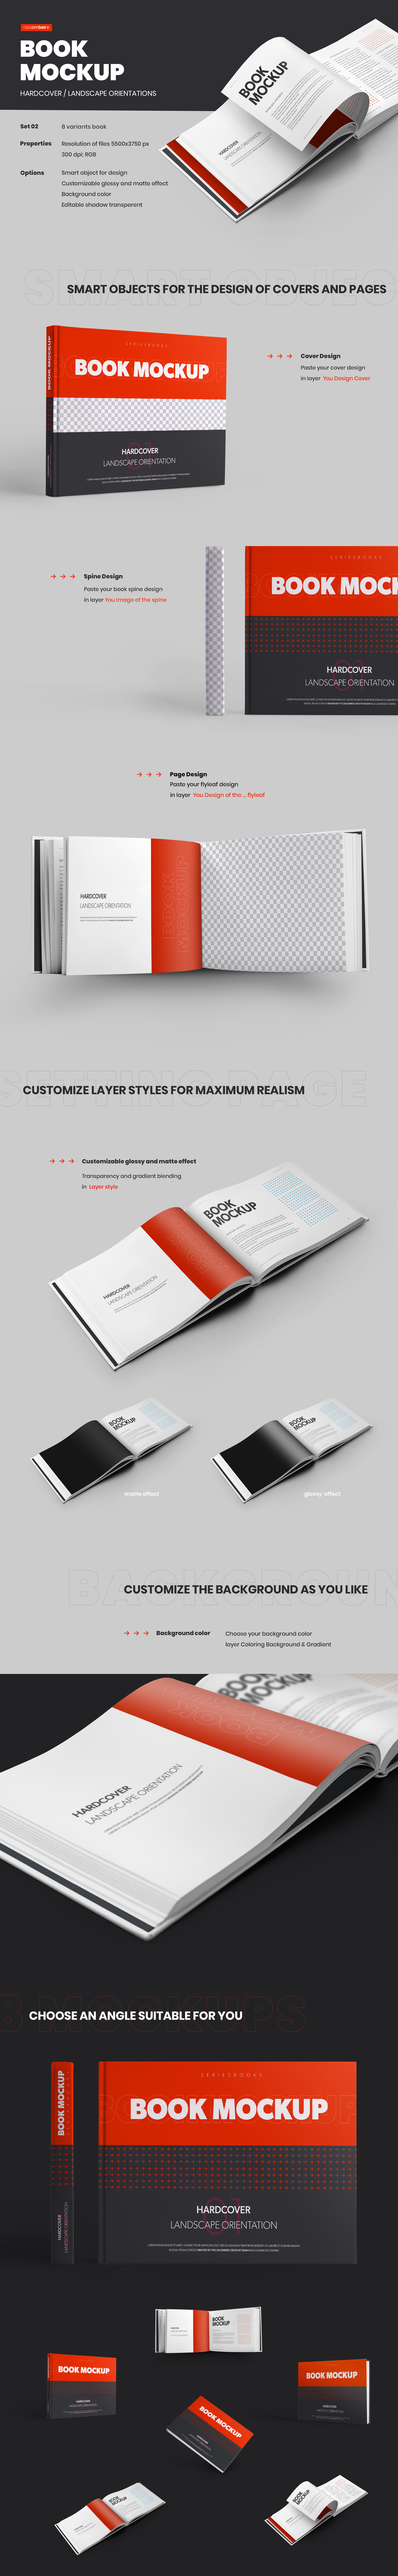 Download 8 Book Mockups Hard Cover Landscape Oriantation In Stationery Mockups On Yellow Images Creative Store PSD Mockup Templates